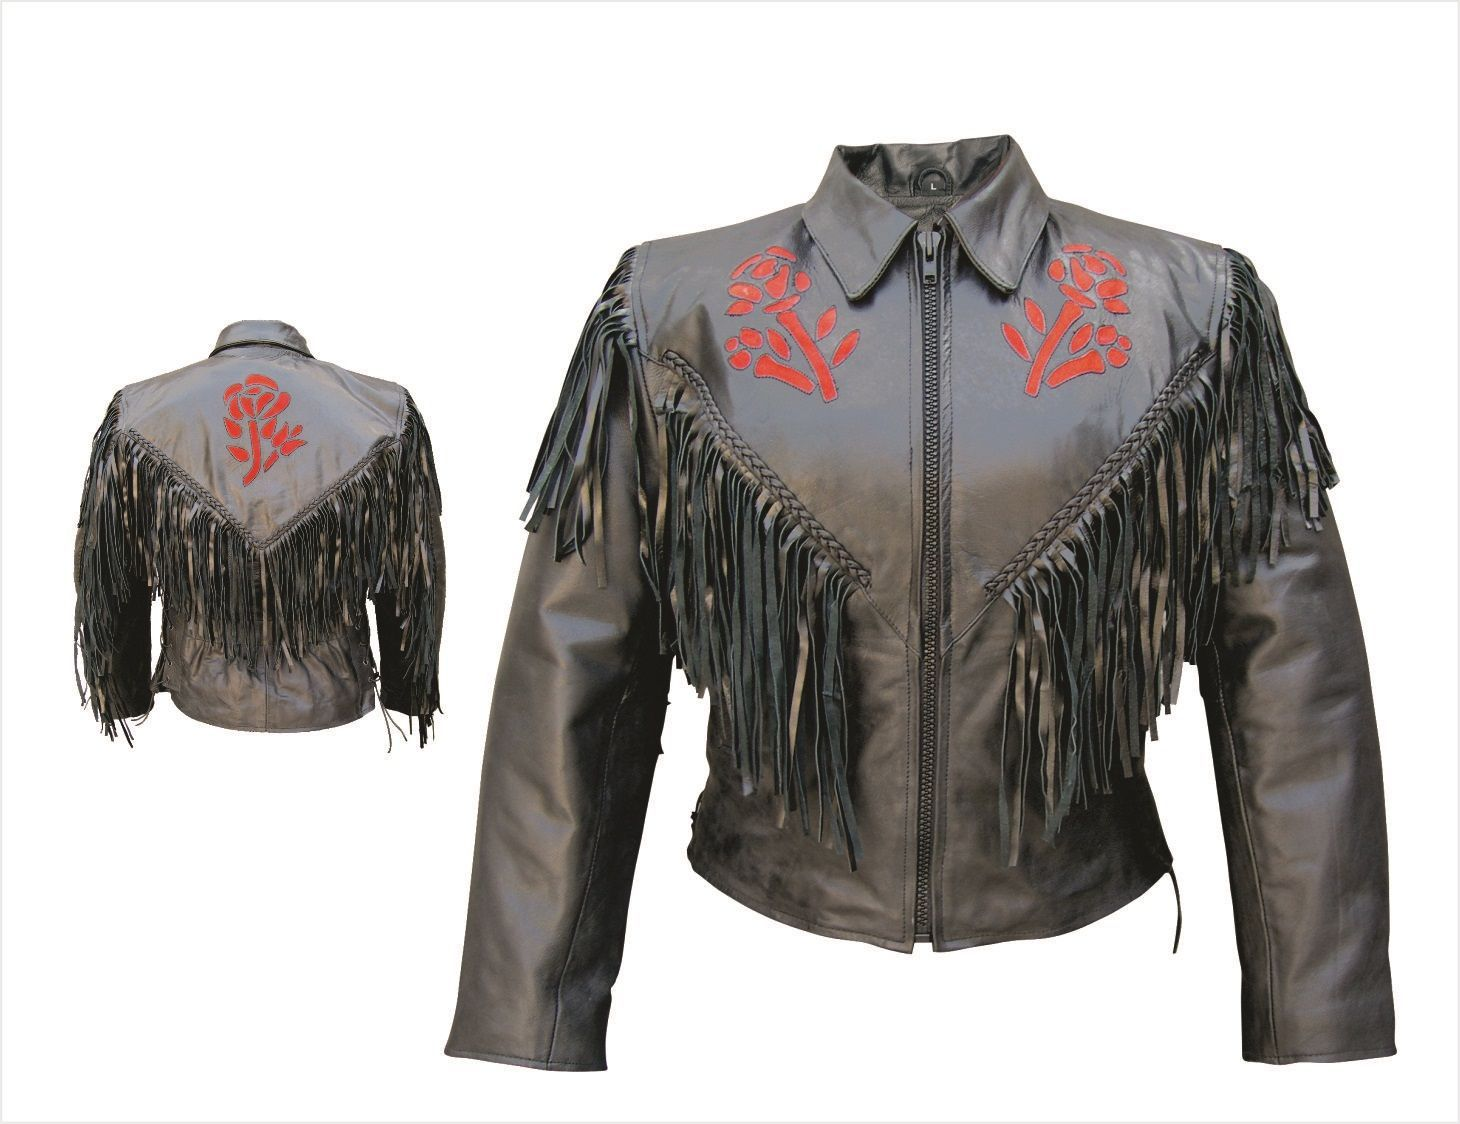 Leather jacket with roses - Womens Red Rose Leather Motorcycle Jacket With Fringe Braid Side Laces By Allstate Leather